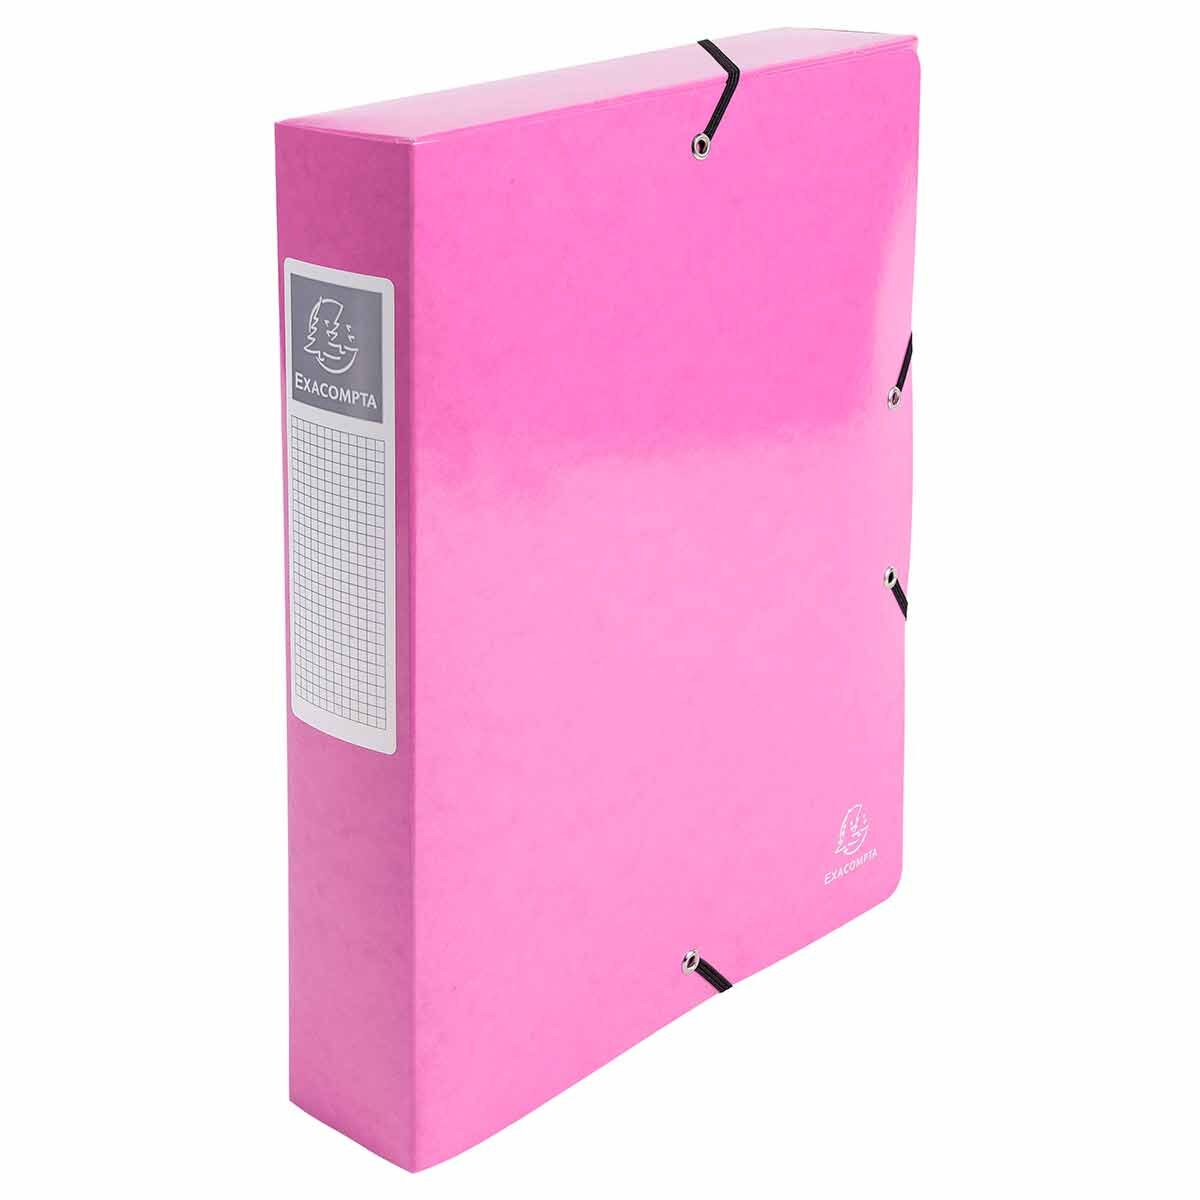 Exacompta Iderama Elasticated A4 Box File 60mm Pack of 8 Pink